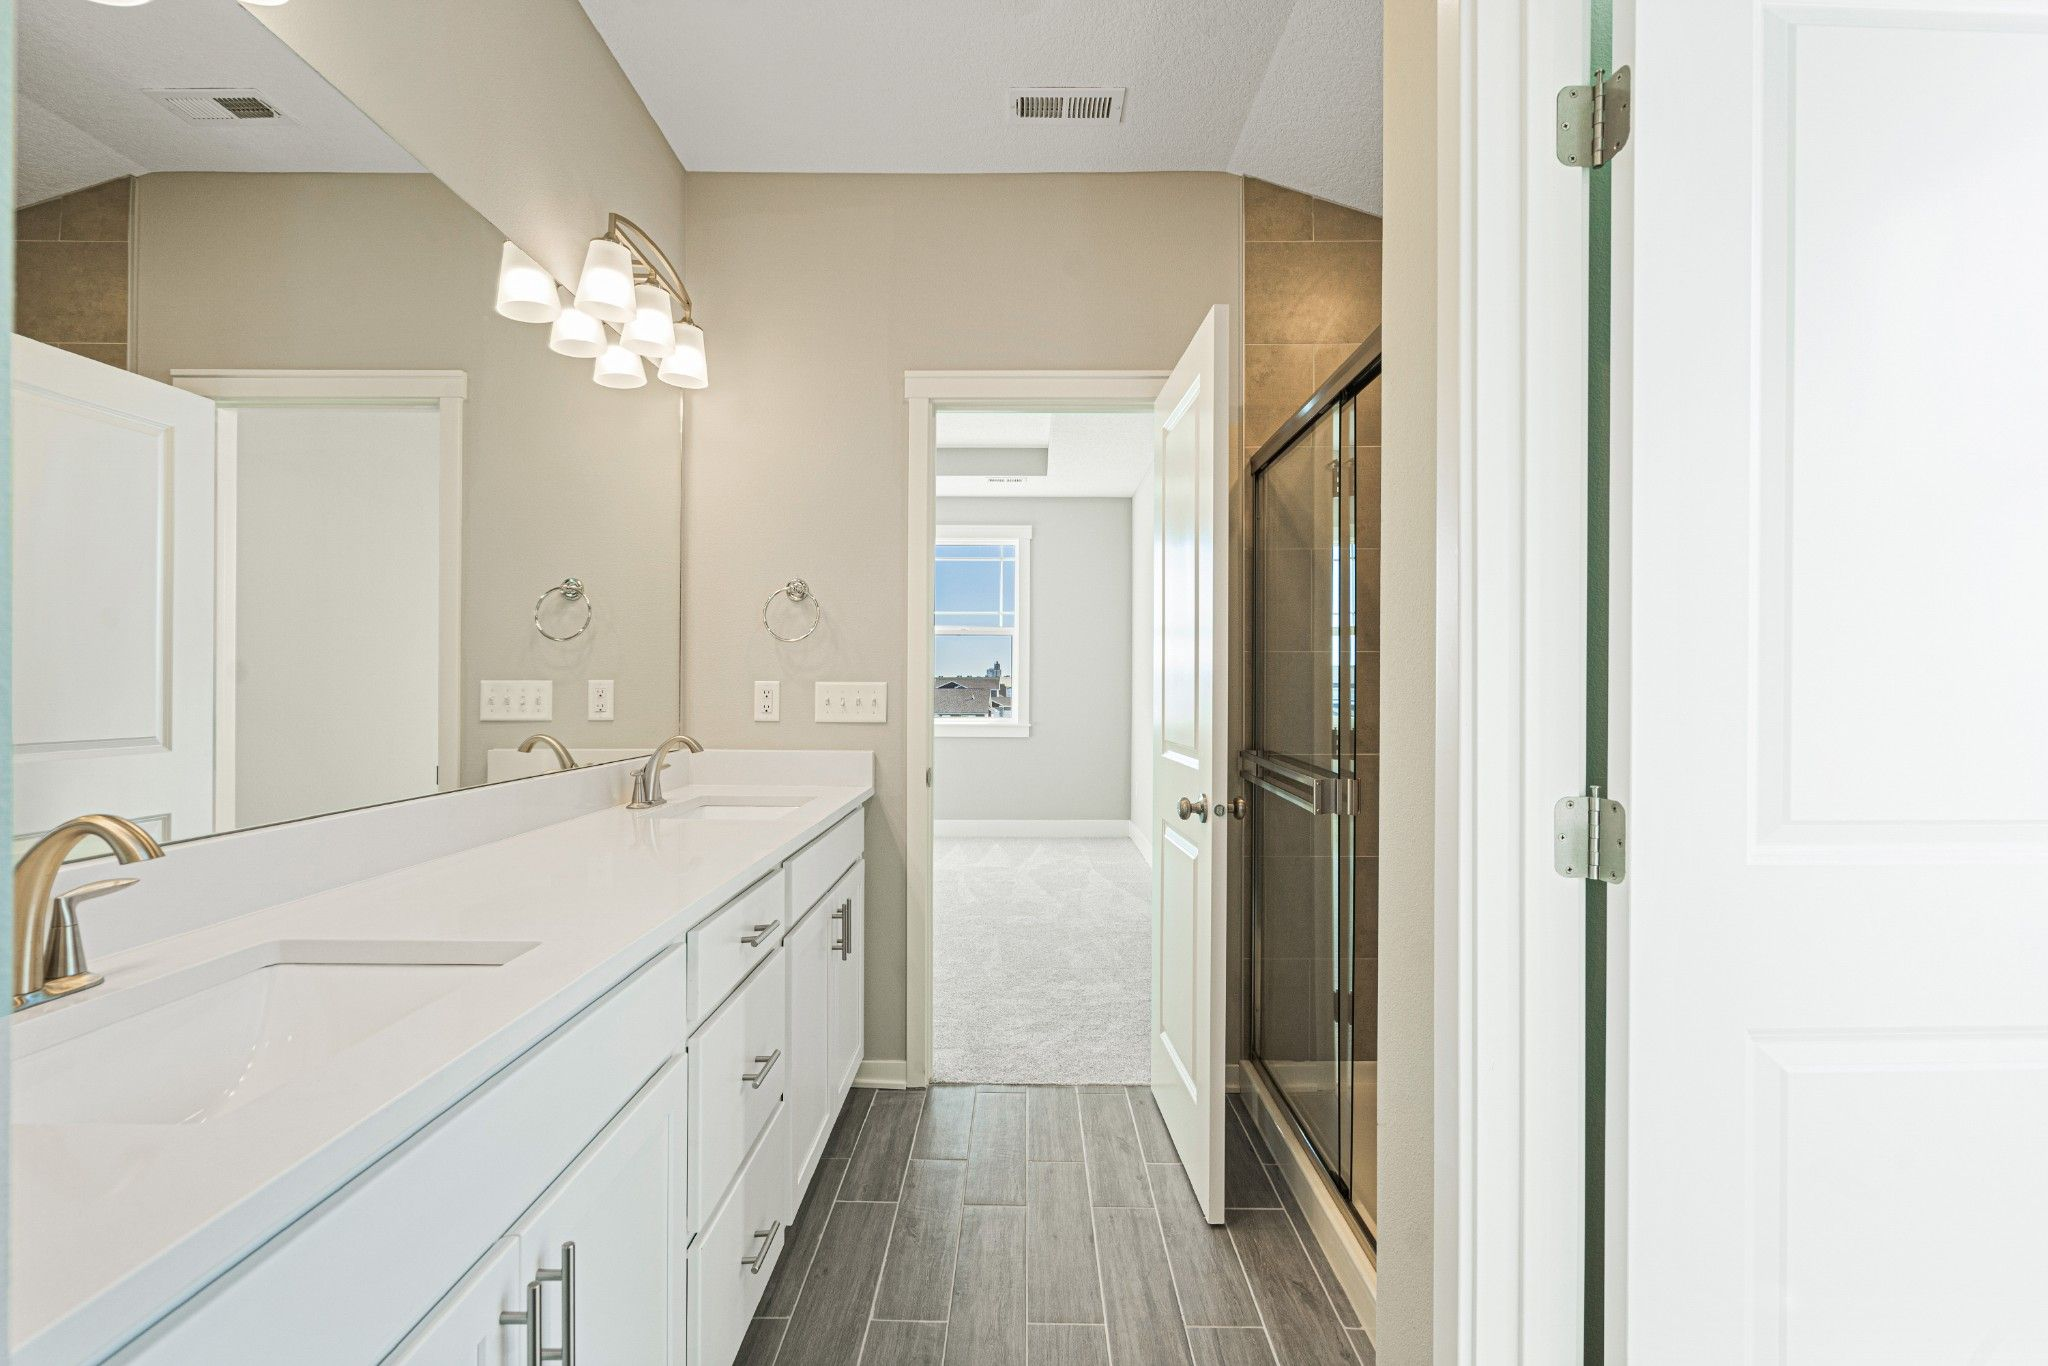 Bathroom featured in the Winfield - IA By Summit Homes in Des Moines, IA